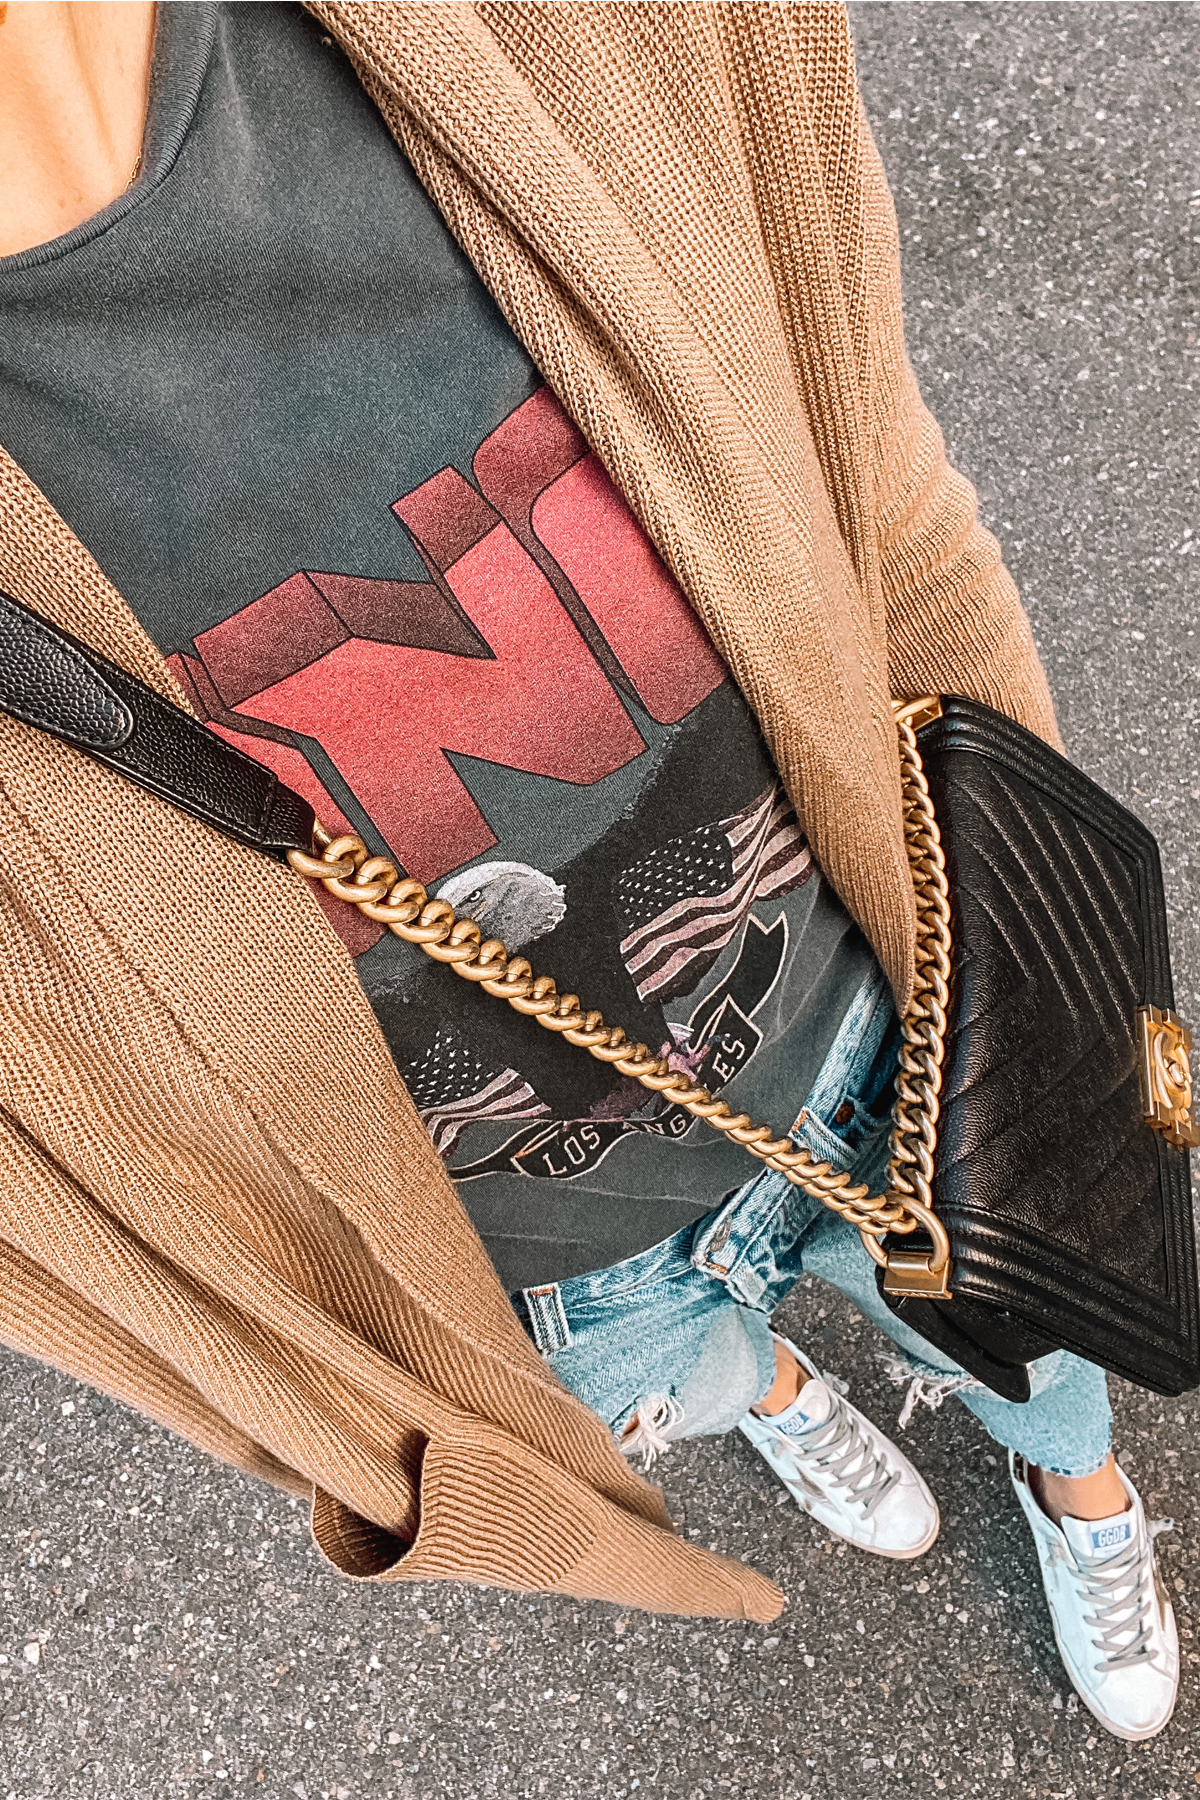 Fashion Jackson Wearing Camel Cardigan Amazon Sweater Ripped Jeans Veja Sneakers